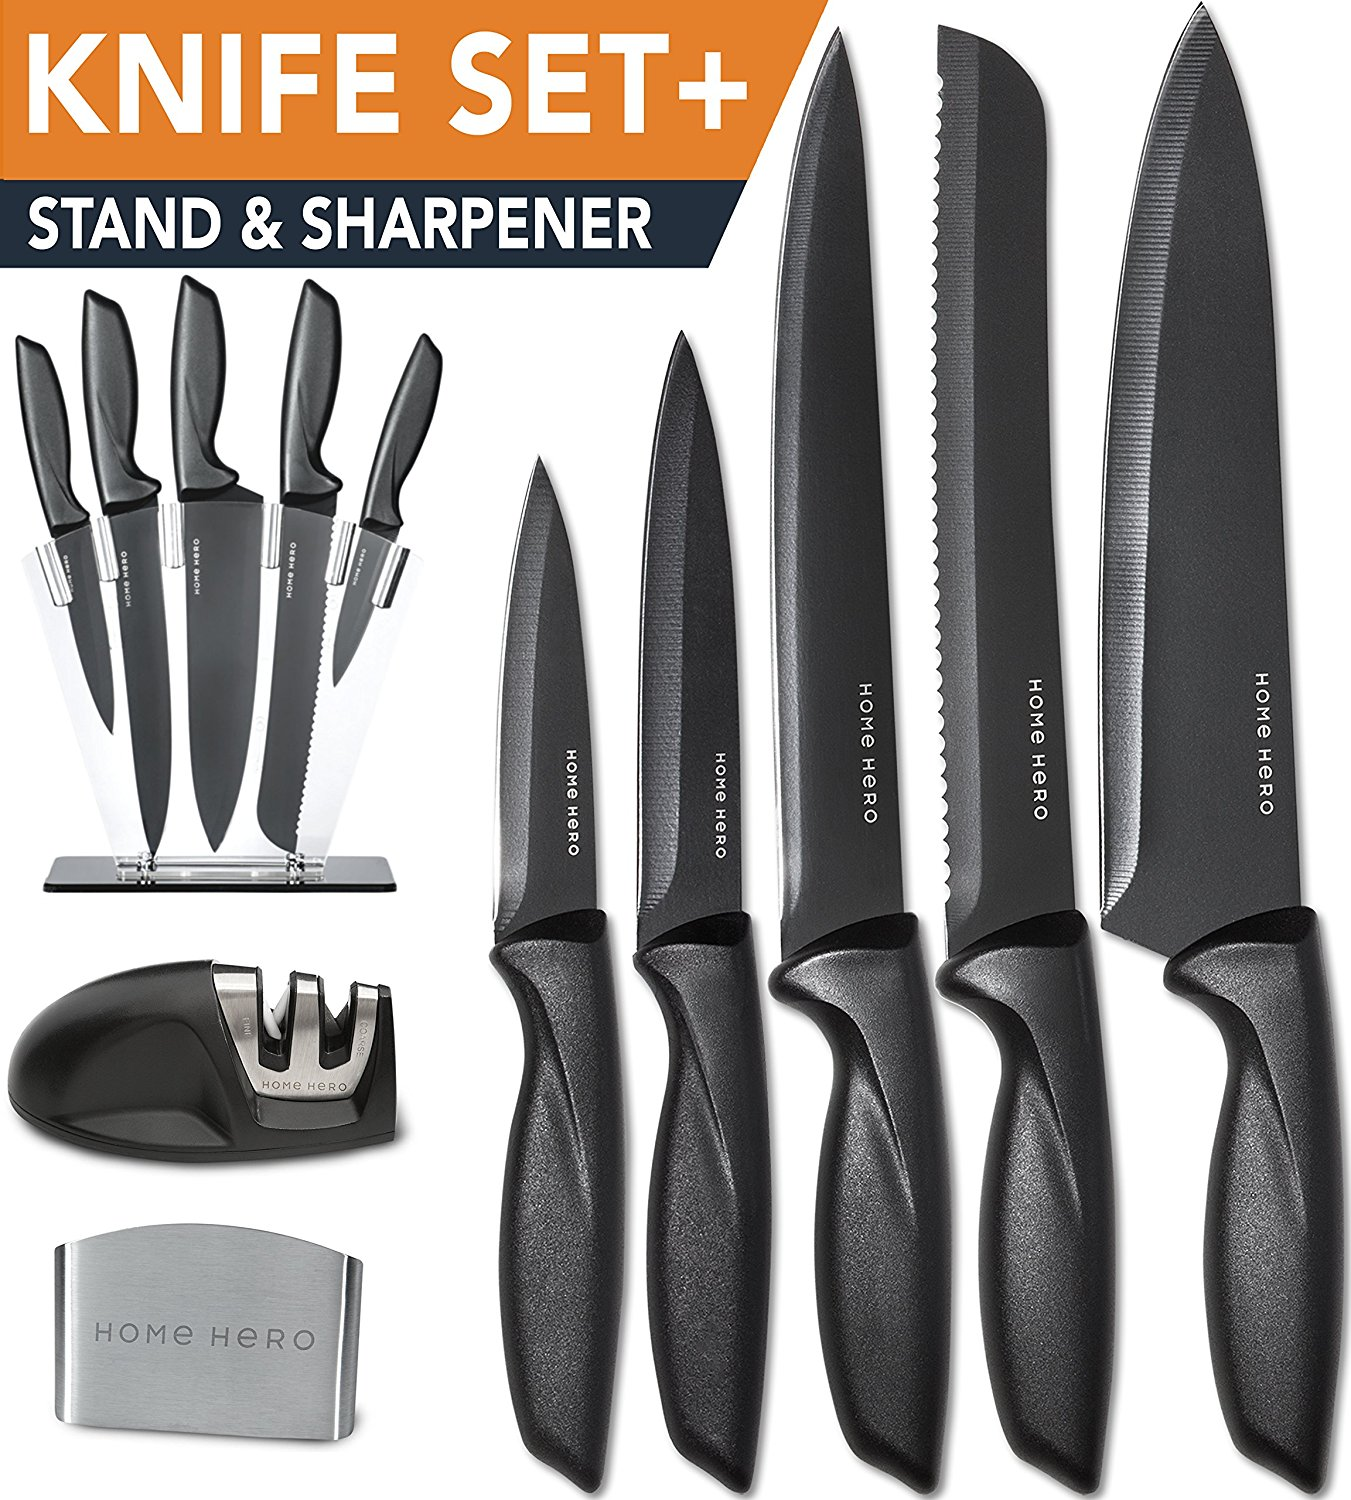 review homehero 5 piece stainless steel sharpener and block kitchen knife set with finger guard. Black Bedroom Furniture Sets. Home Design Ideas